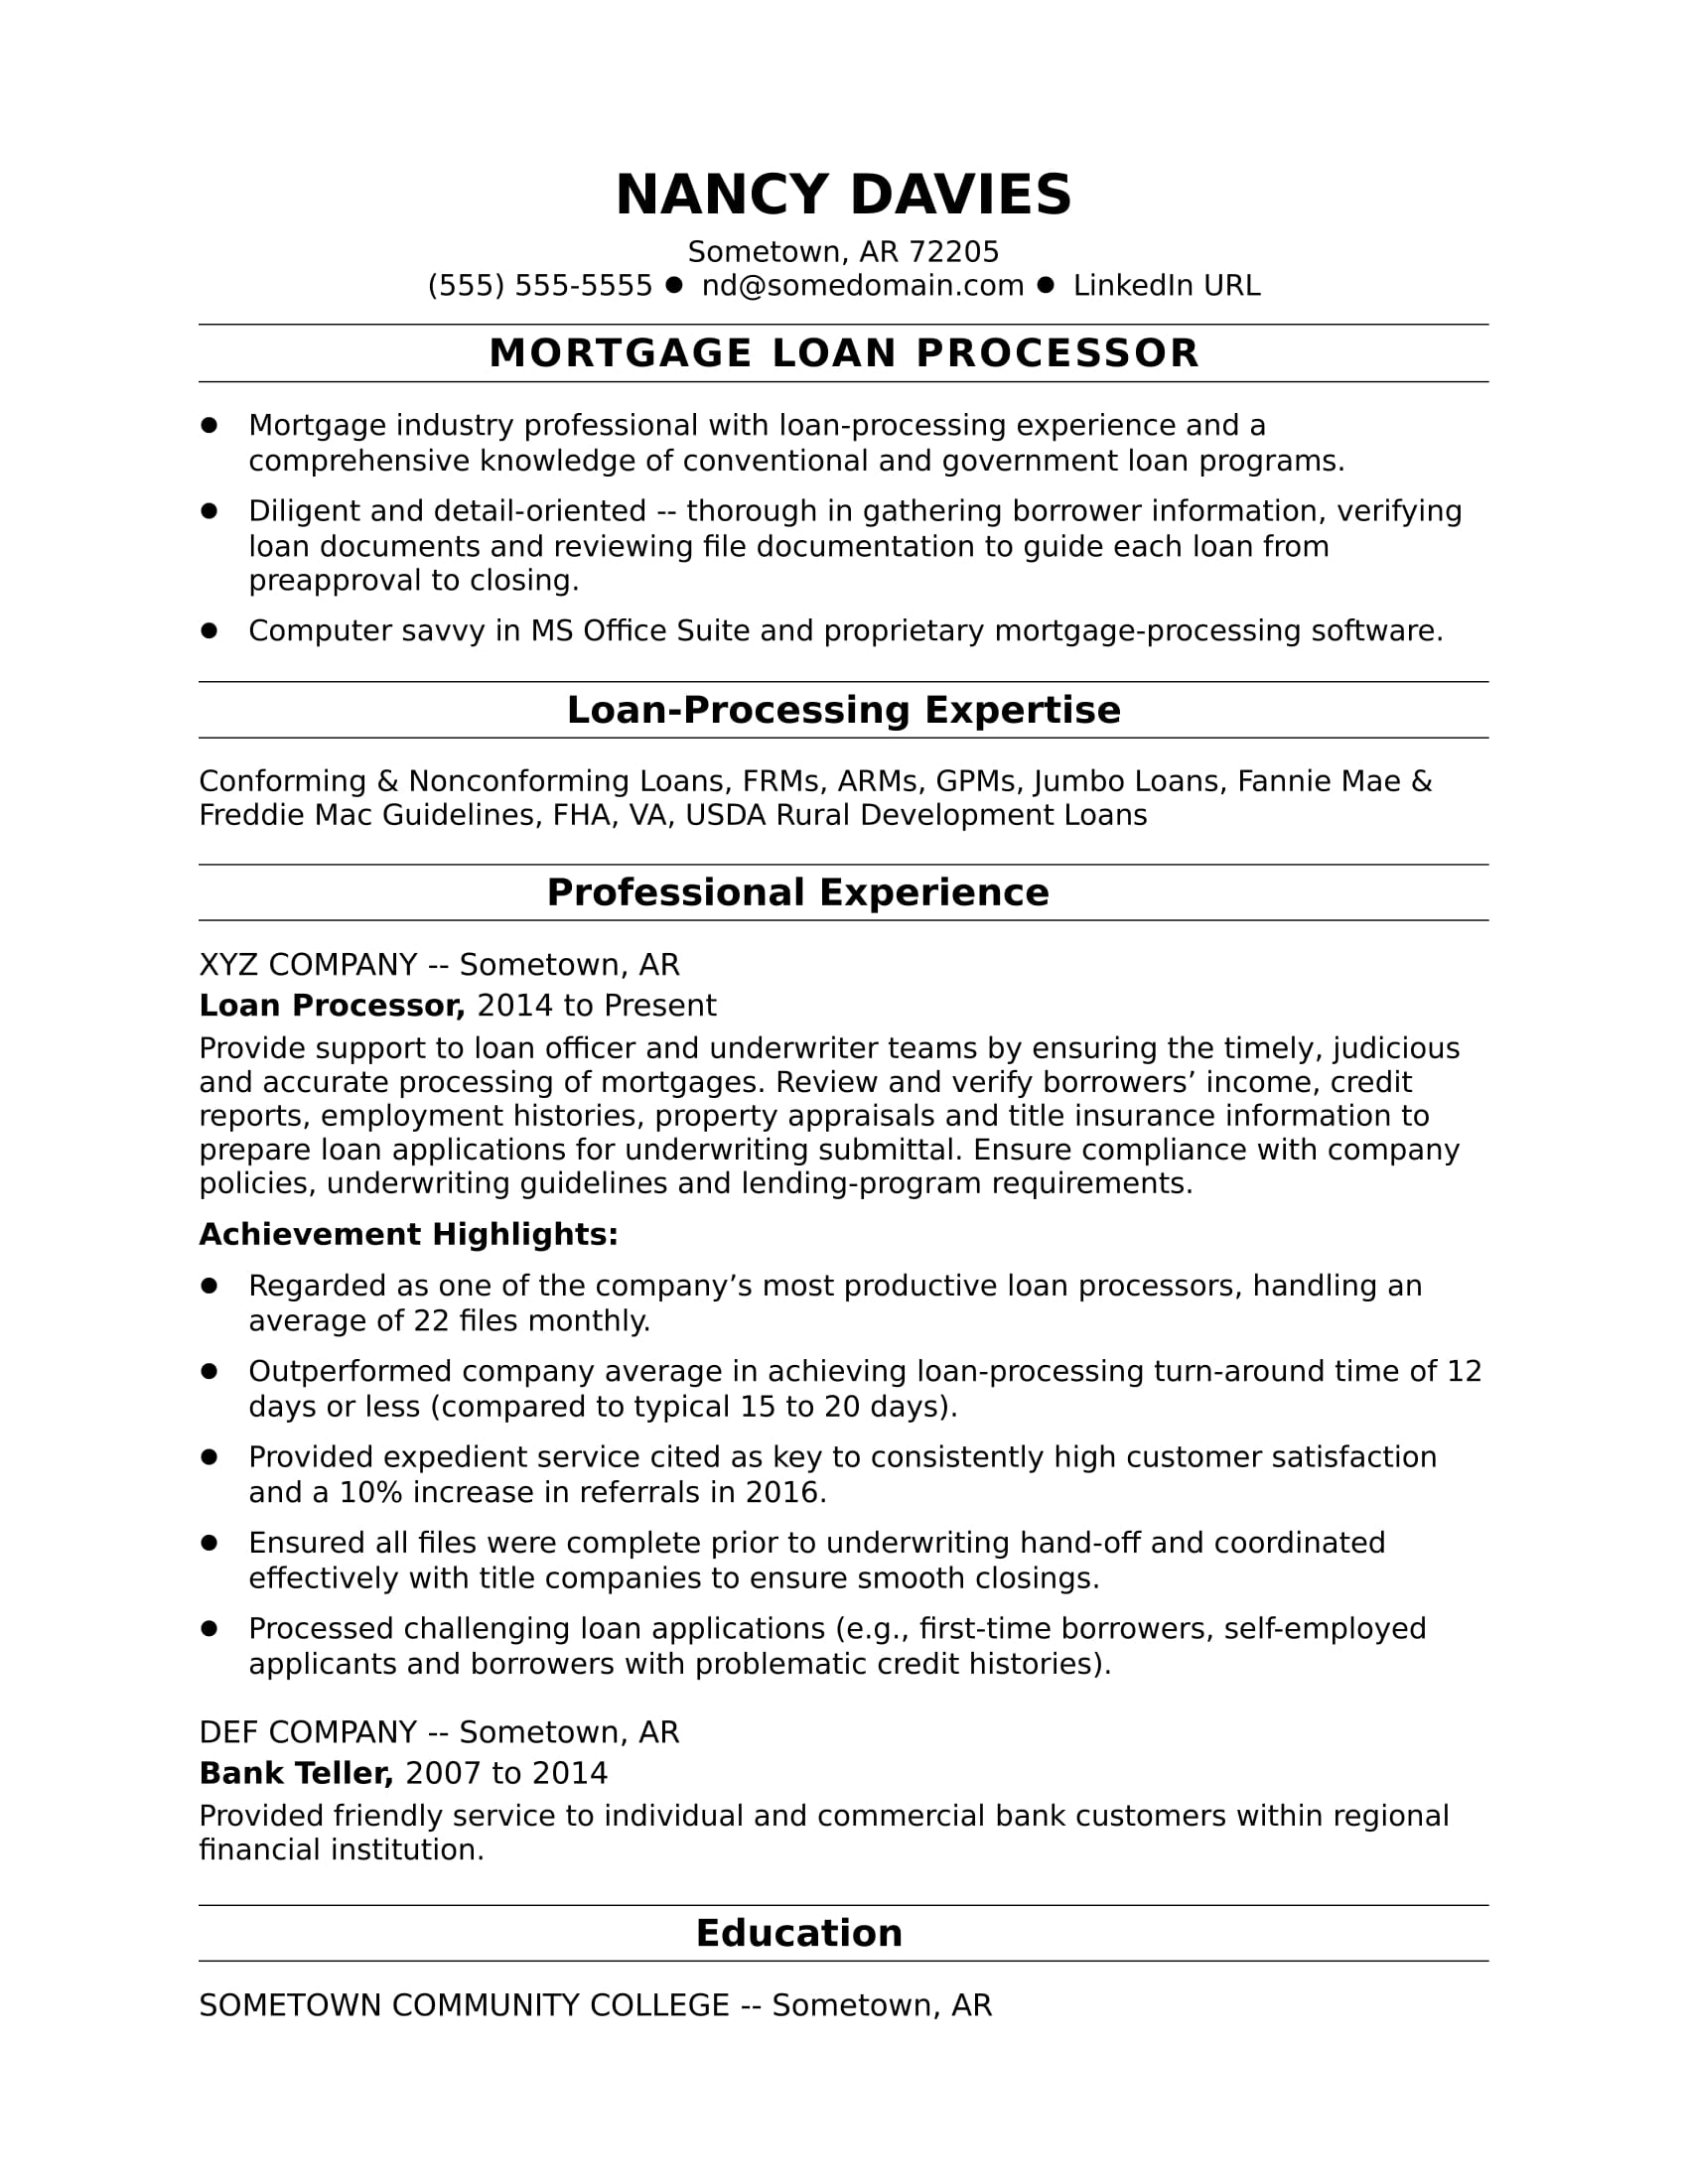 mortgage loan processor resume sample monster process associate summary examples for Resume Process Associate Resume